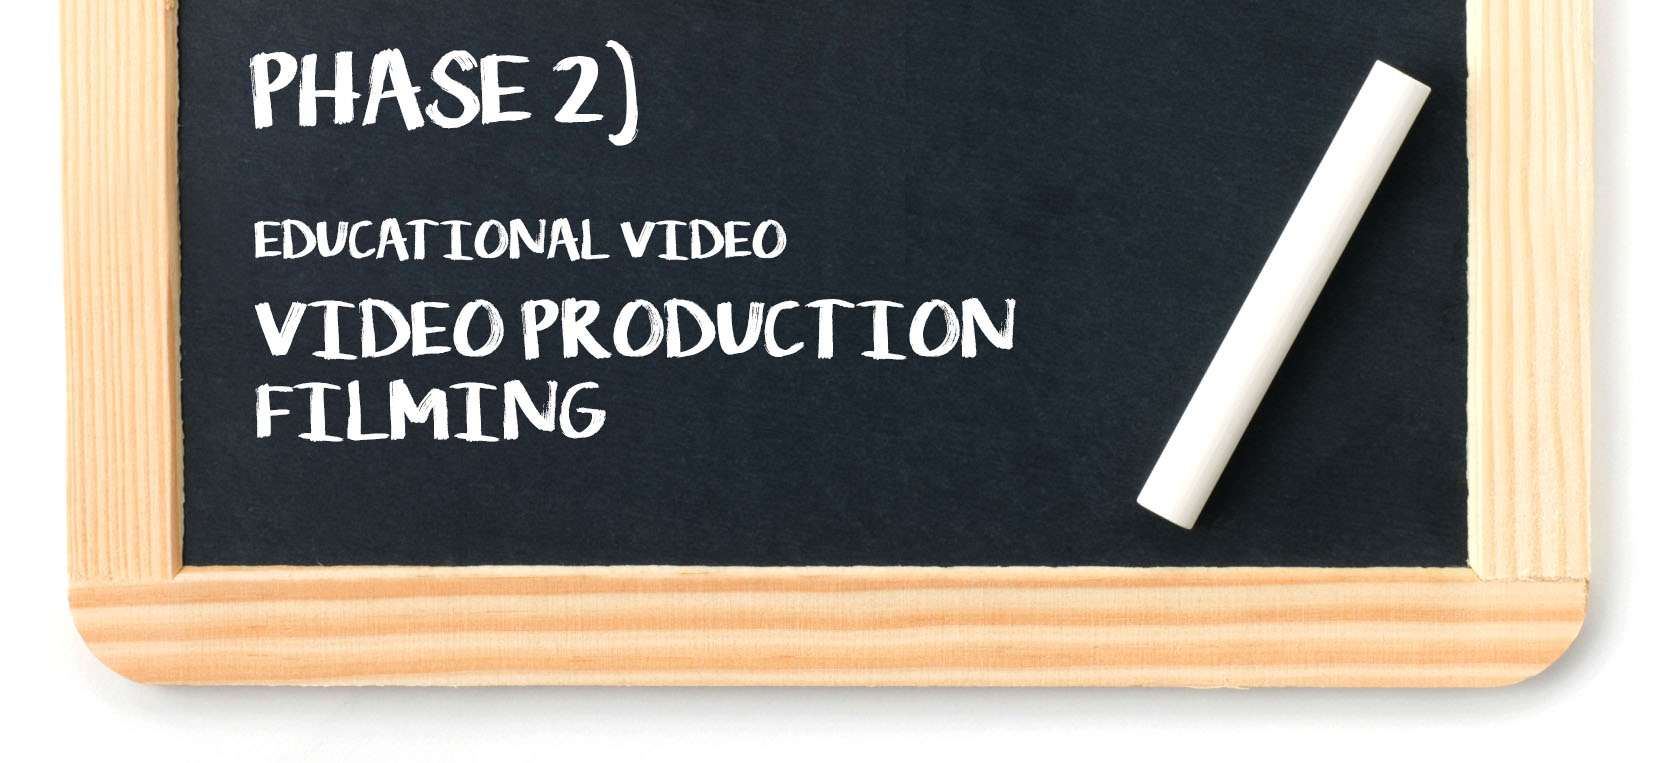 Video Production Filming an Educational Video